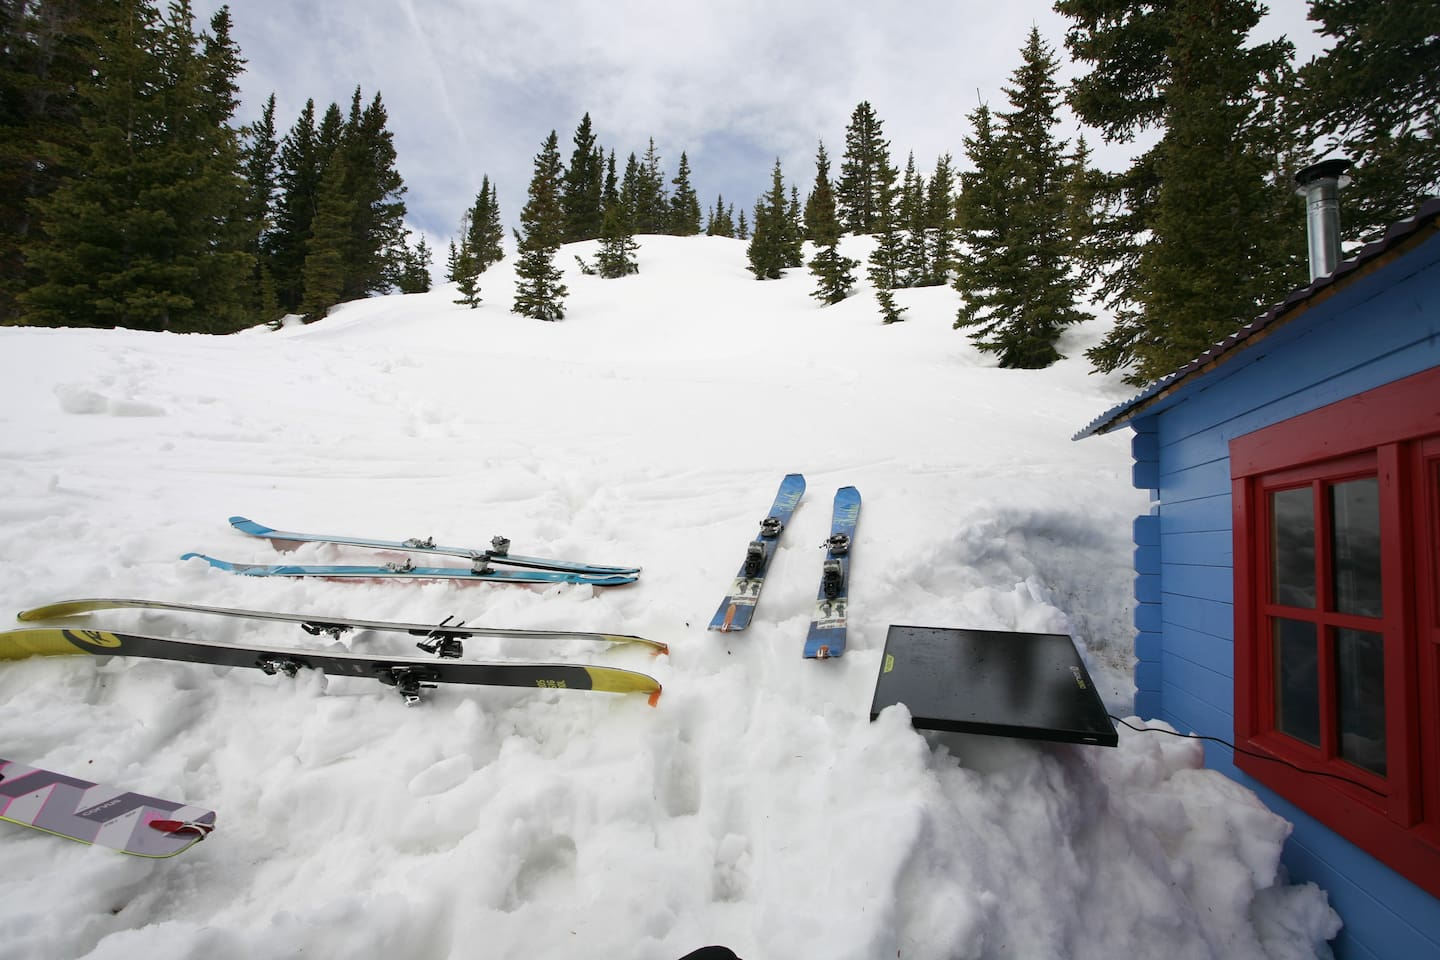 Plenty of room for 4 skiers to cozy up